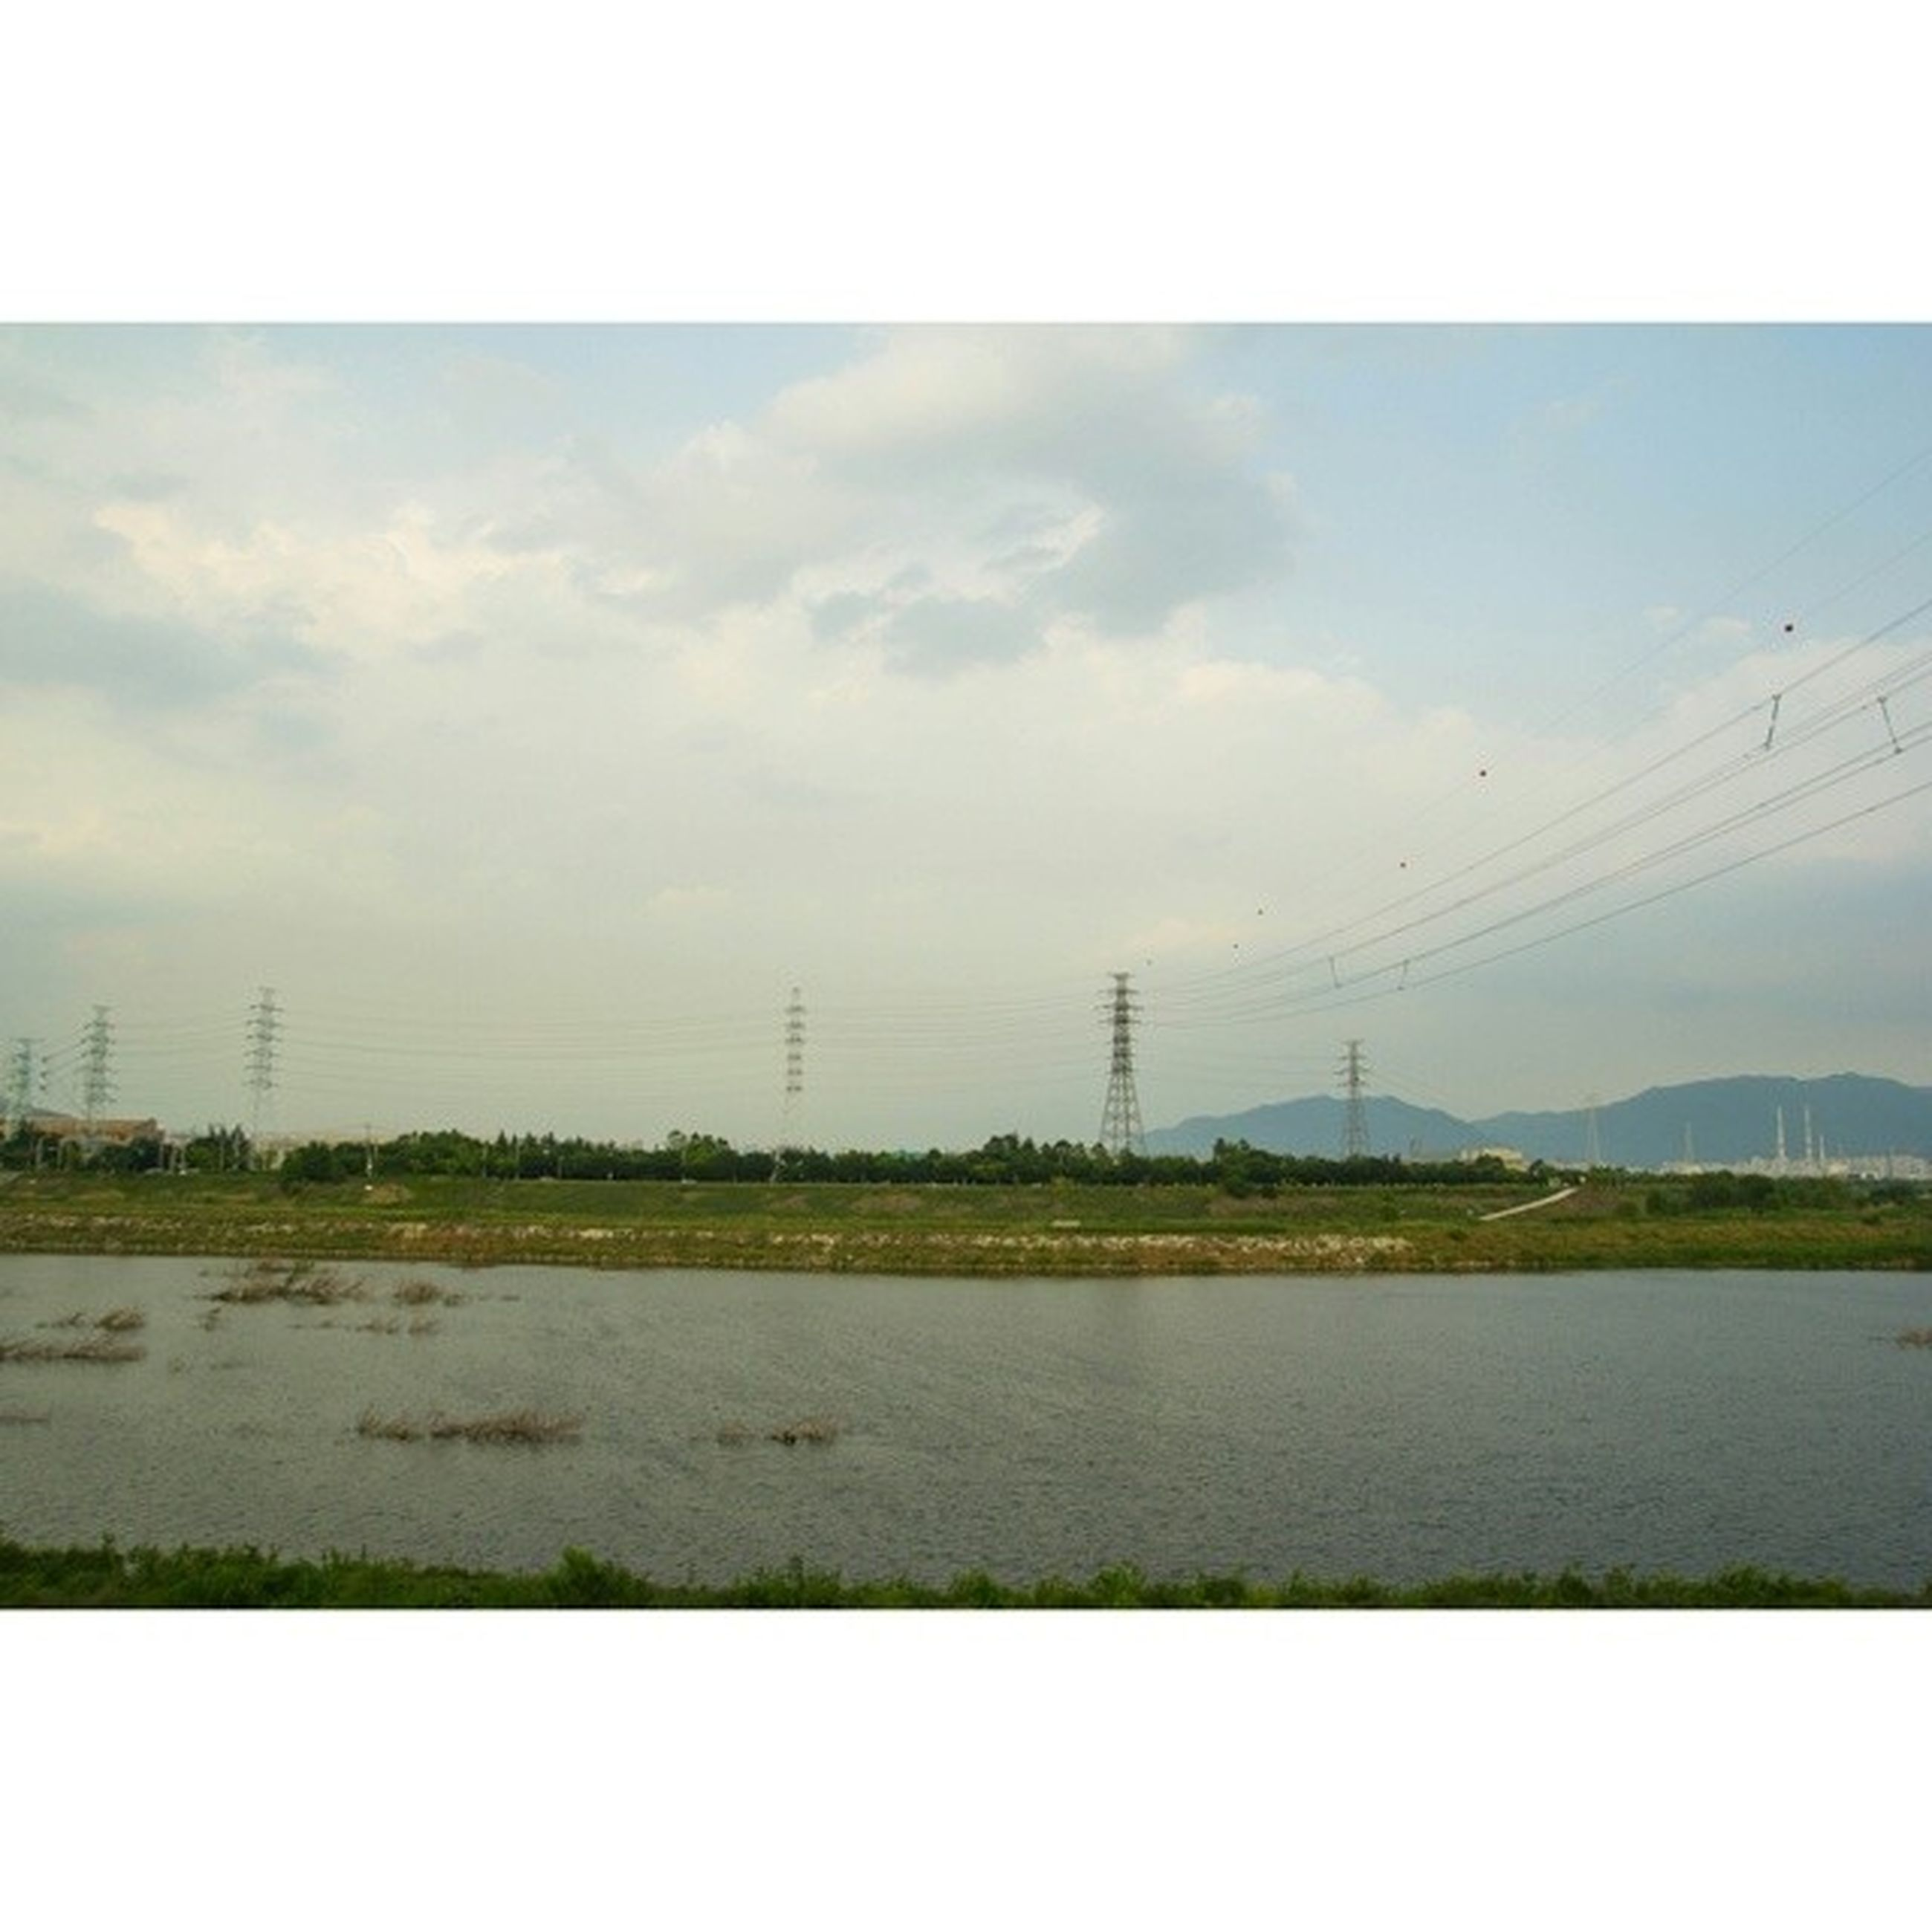 transfer print, electricity pylon, sky, power line, auto post production filter, field, grass, landscape, fuel and power generation, connection, power supply, electricity, tranquil scene, tranquility, cloud - sky, nature, water, scenics, cloud, rural scene